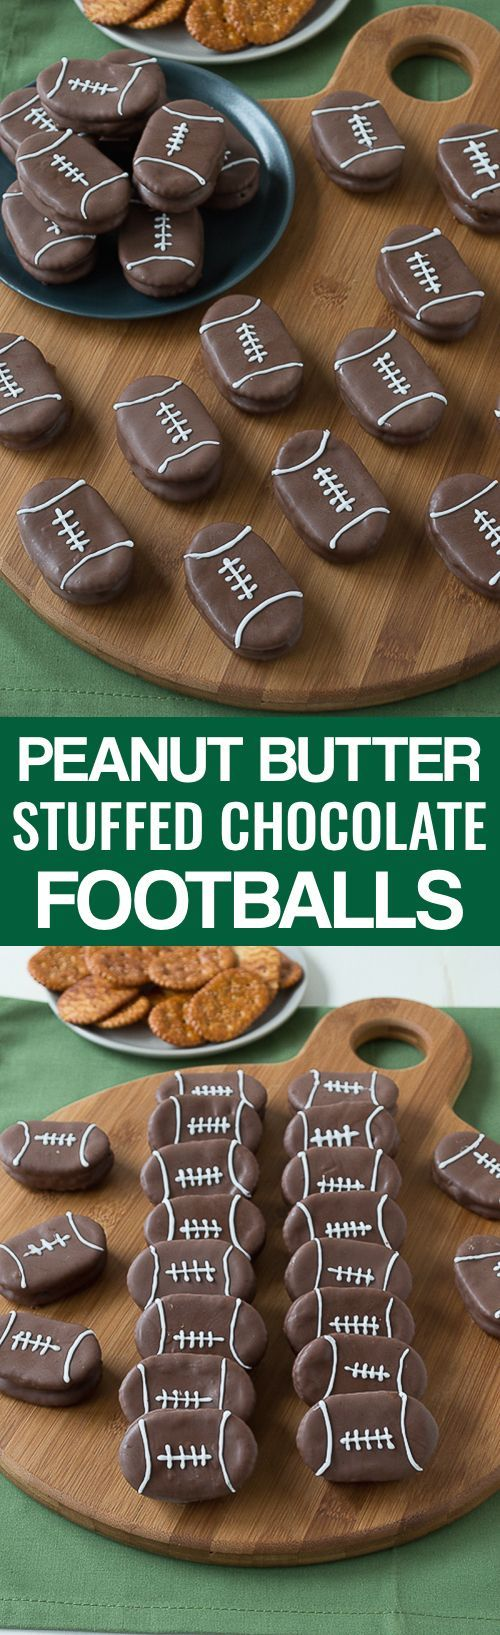 Peanut Butter Stuffed Chocolate Footballs - the perfect football treat for game day!